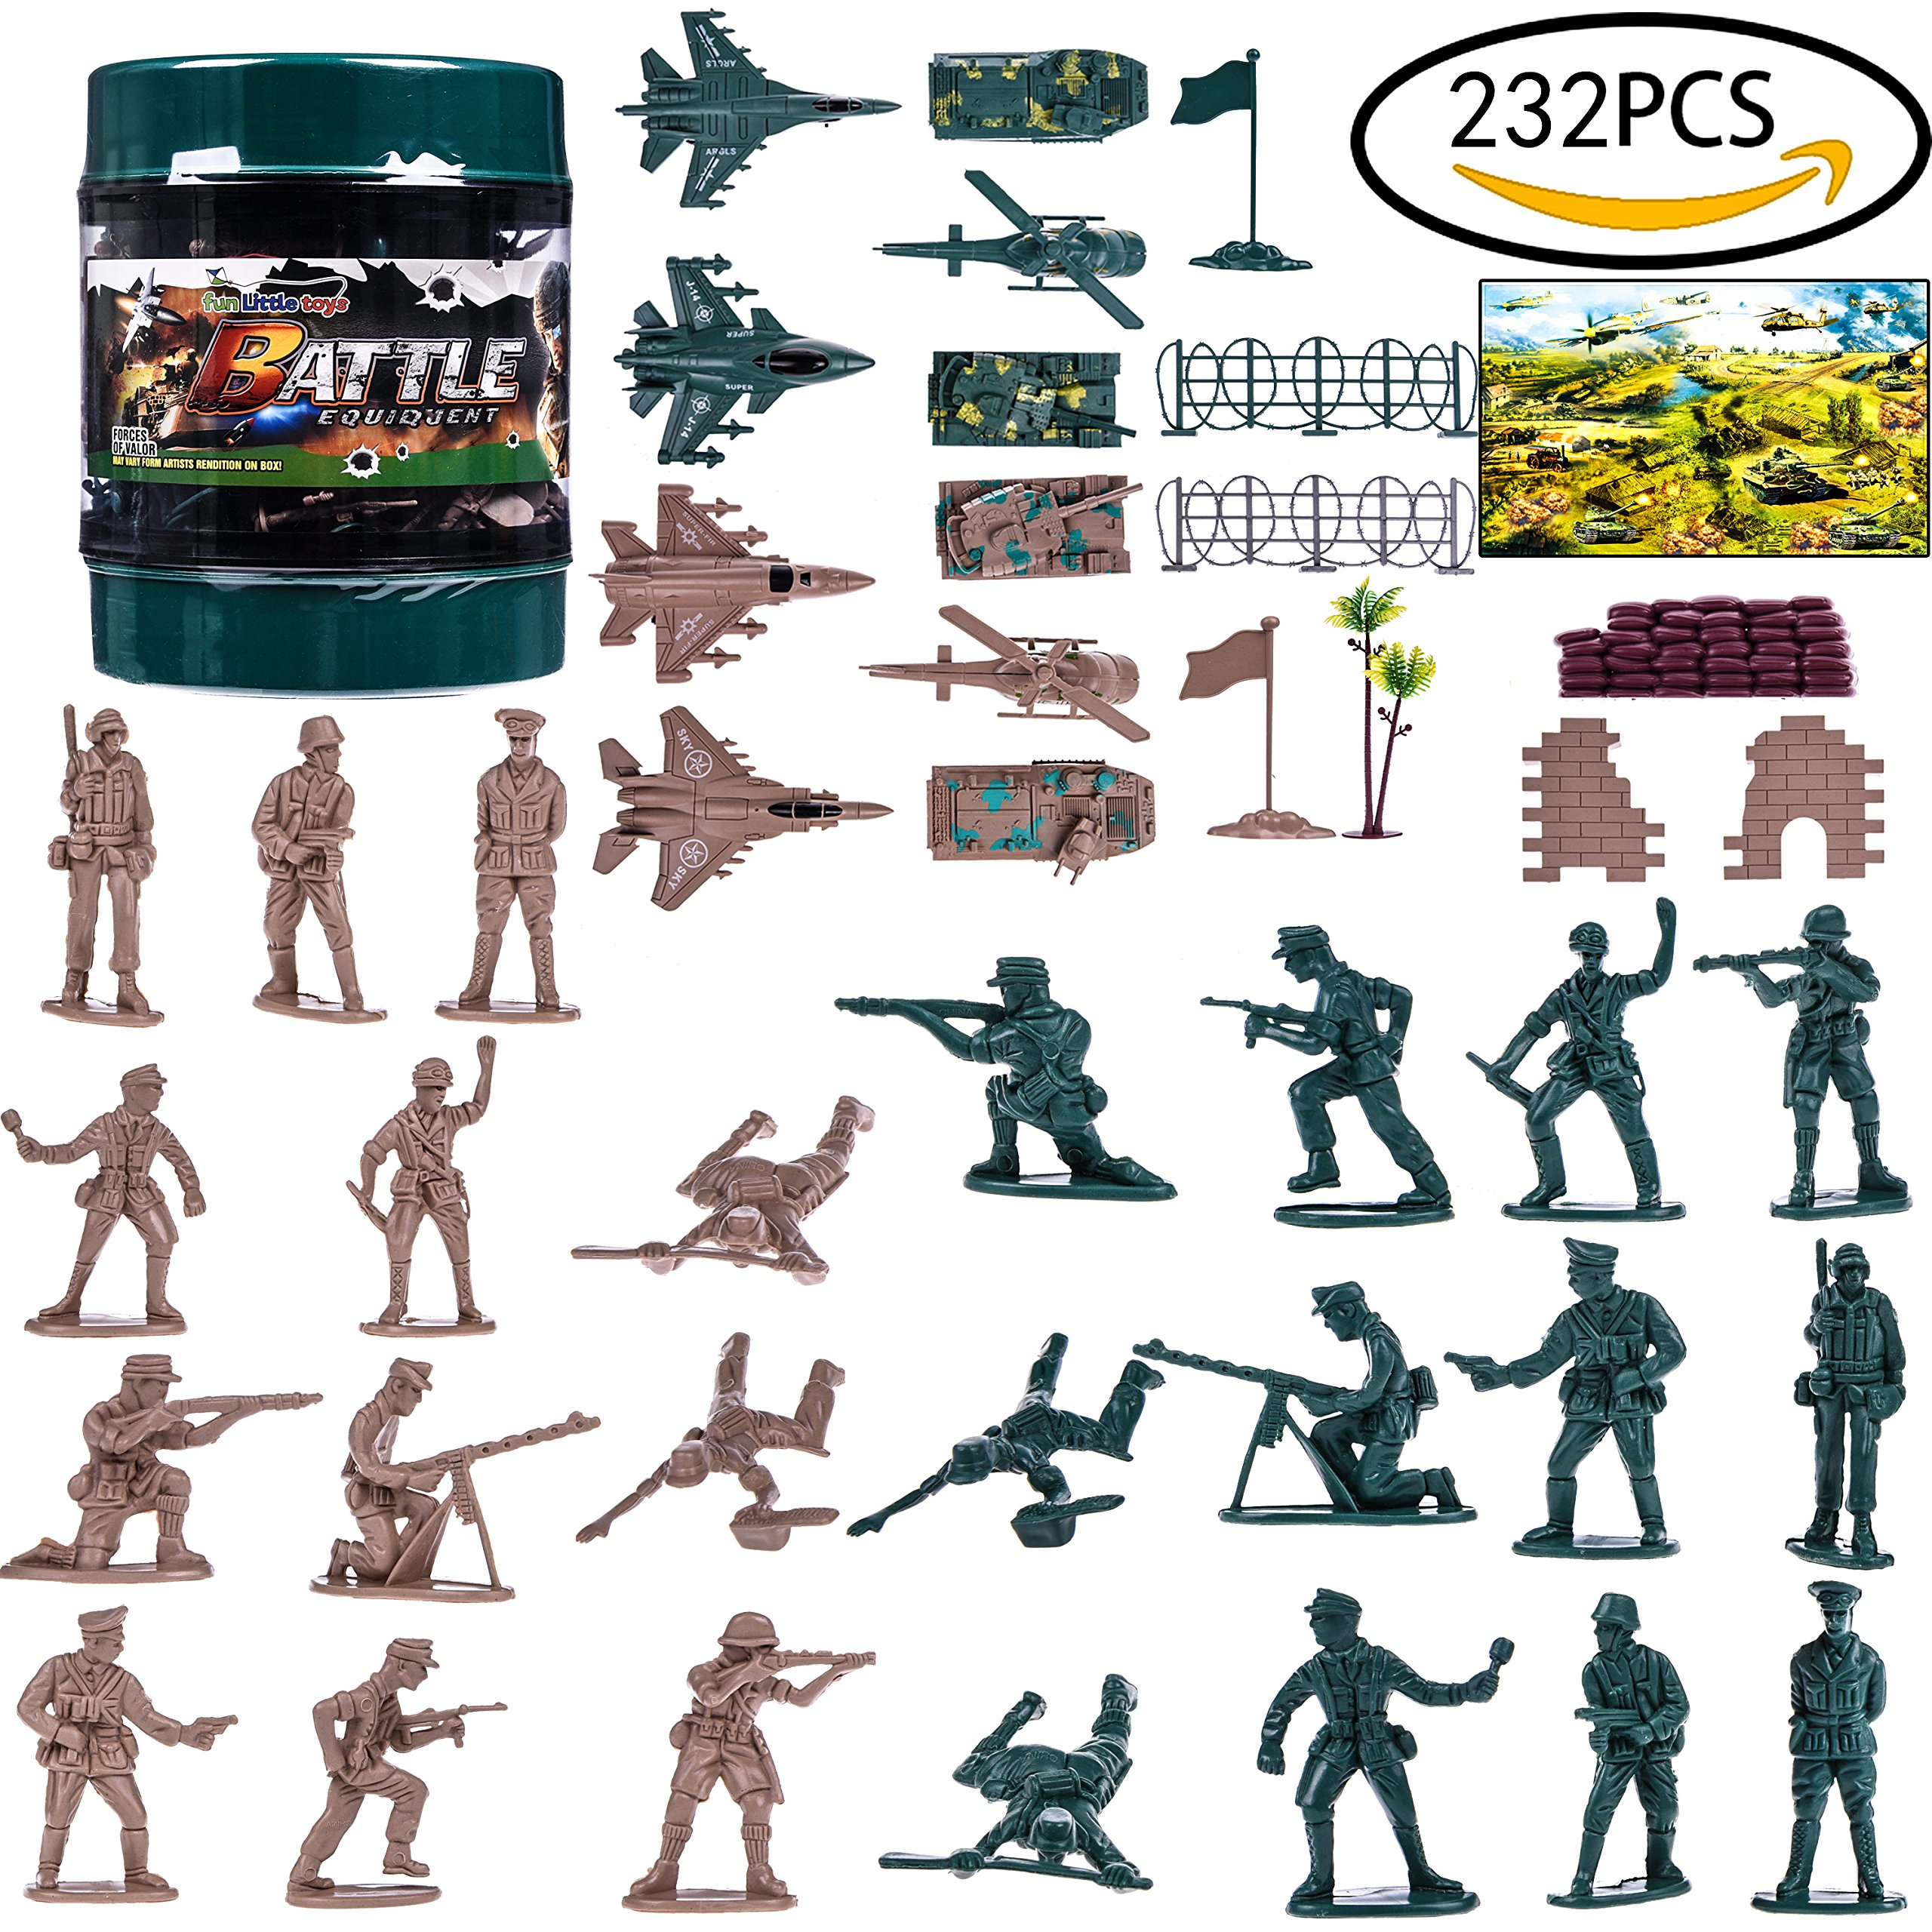 Army Toys Soldiers Plastic Army Men Military Action Figures Civil War WW 2 Parties Combat Special Forces with a Map, Toy Tanks, Planes, Flags, Soldier Figures, Fences & Accessories 232 PCs